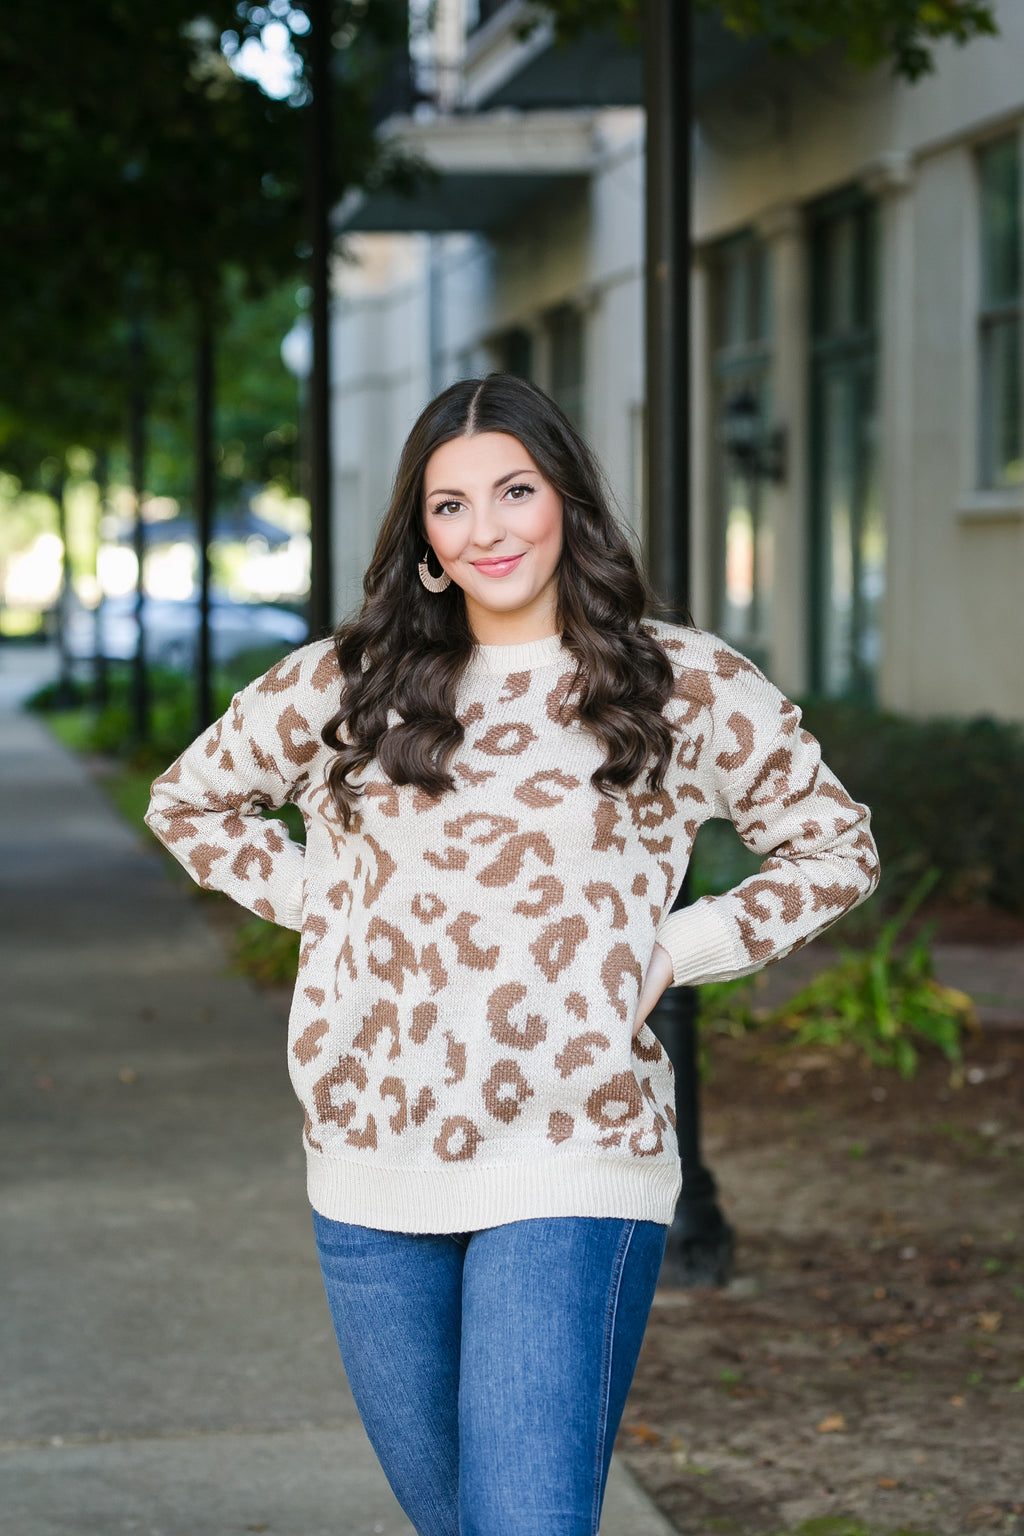 she's spot on leopard print sweater